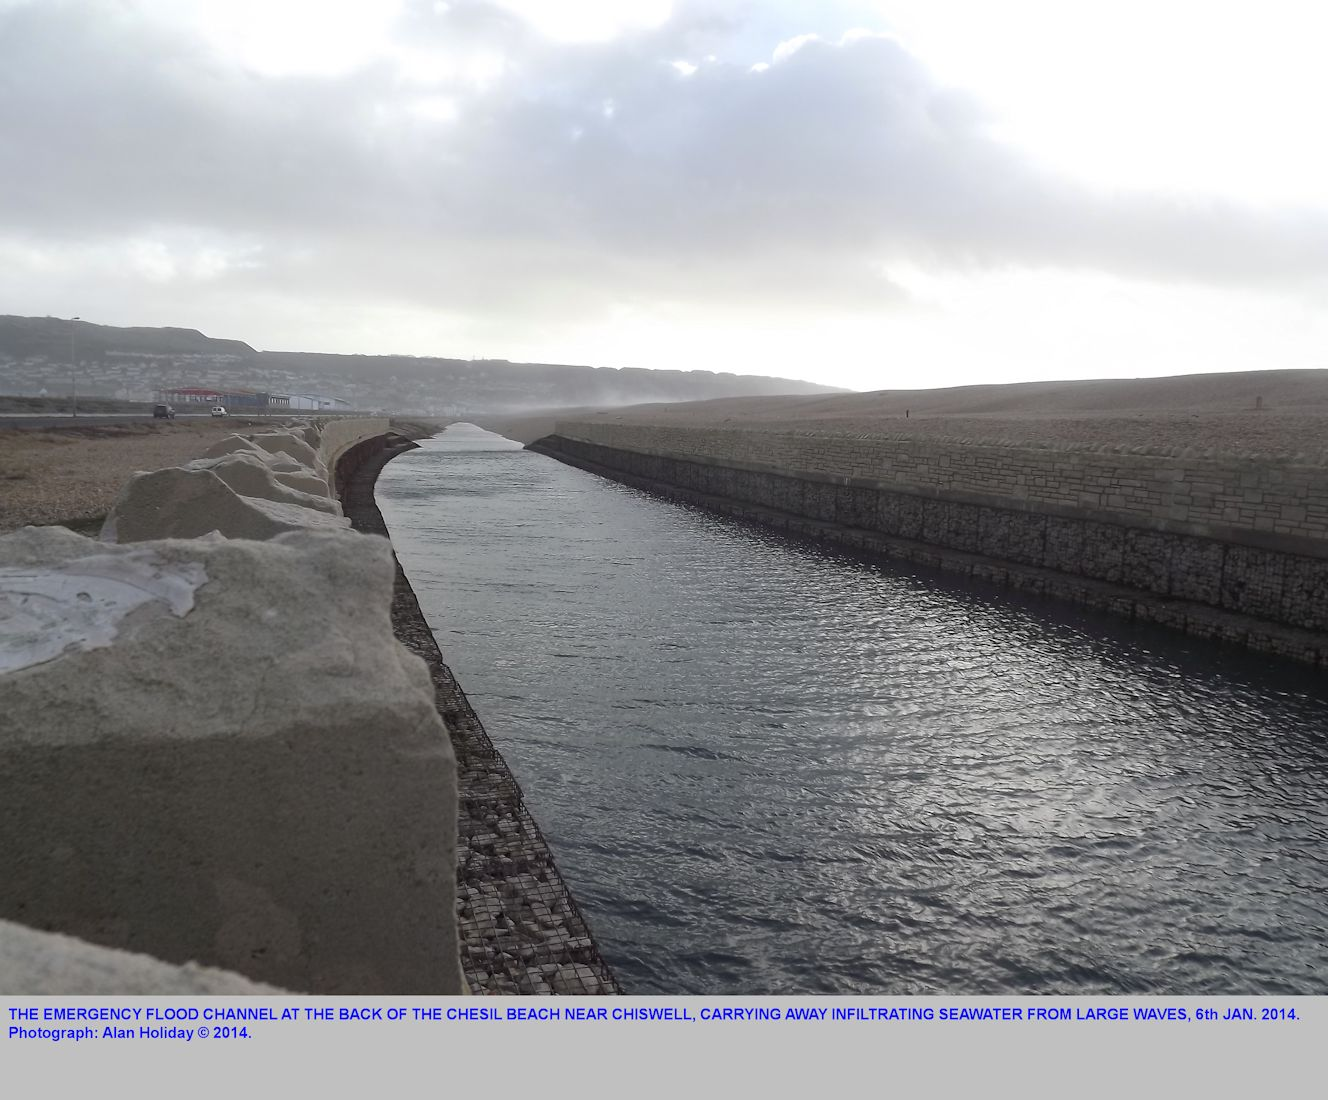 The flood water channel at the back of Chesil Beach in action while large storm waves wash up the beach and supply infiltration water, 6th January 2014, photography by Alan Holiday